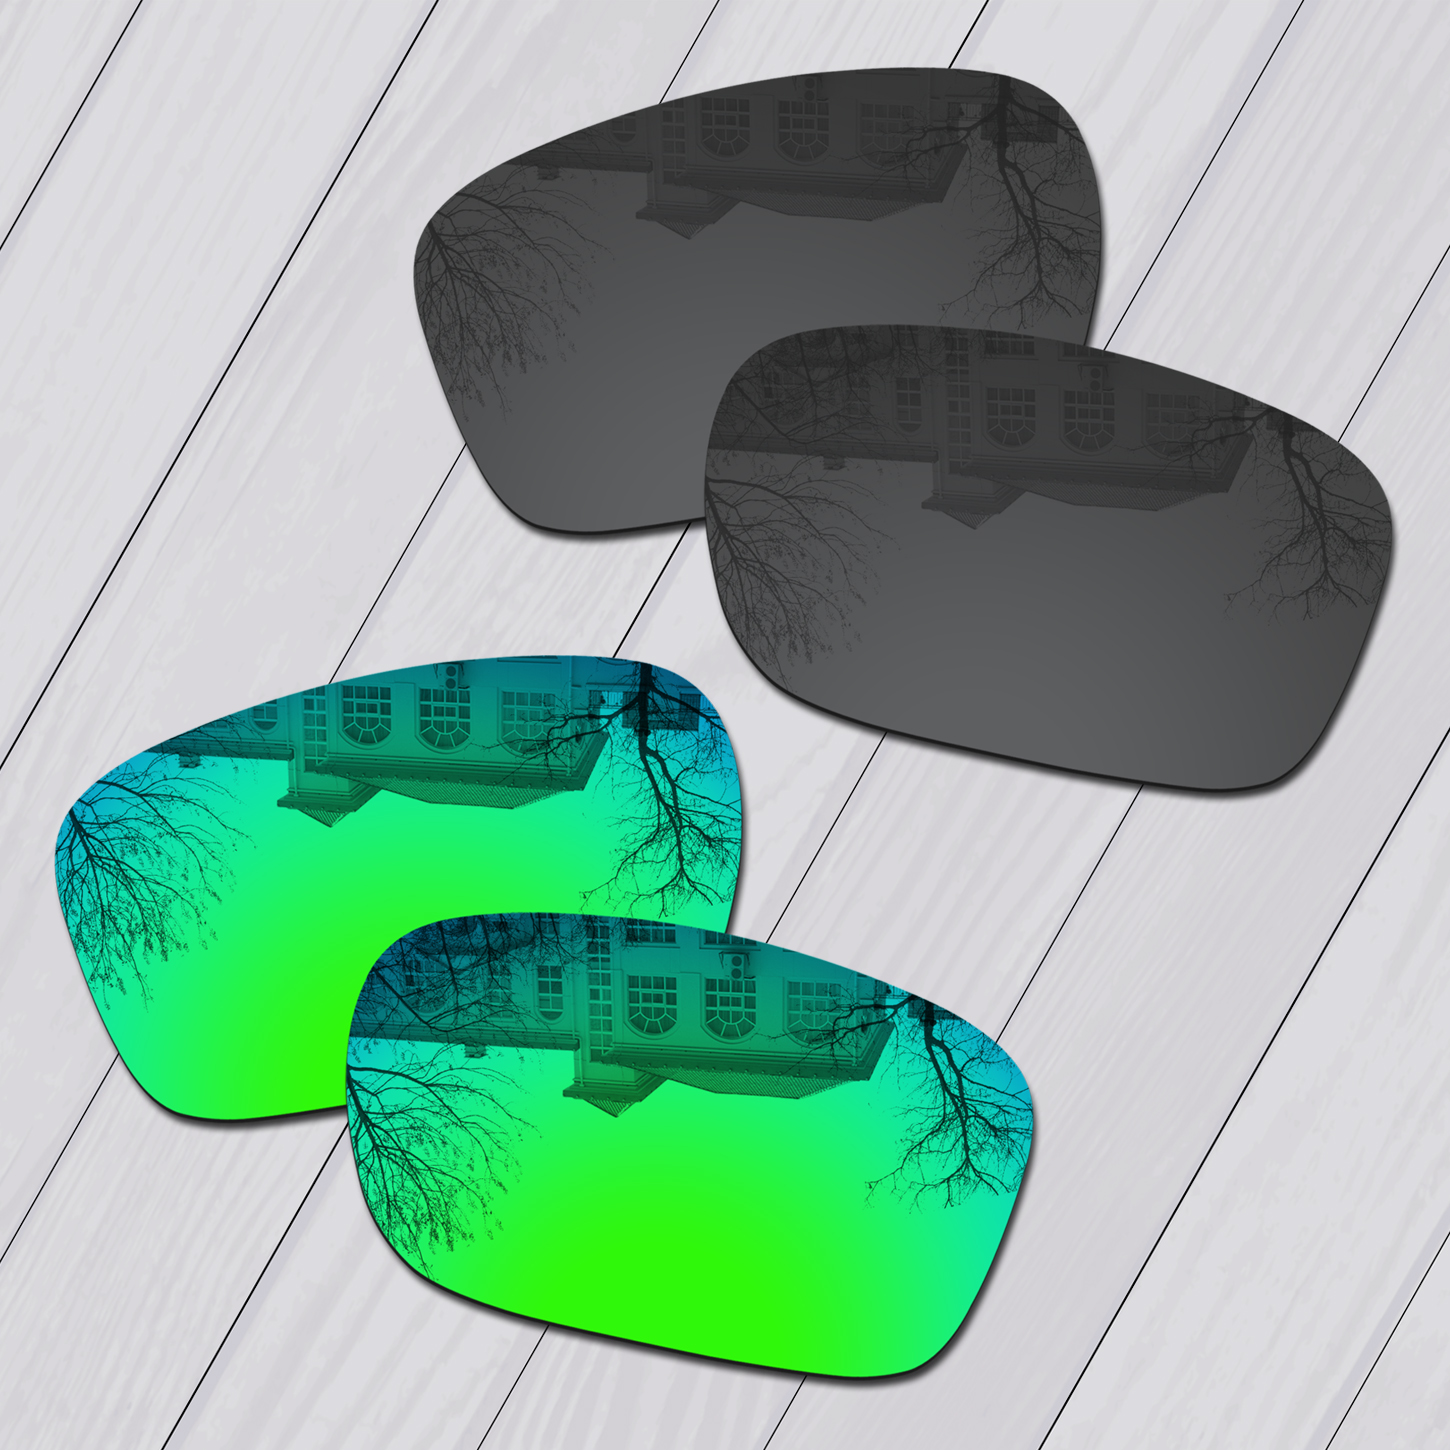 E.O.S 2 Pairs Black & Emerald Green Polarized Replacement Lenses for Oakley Chainlink OO9247 Sunglasses